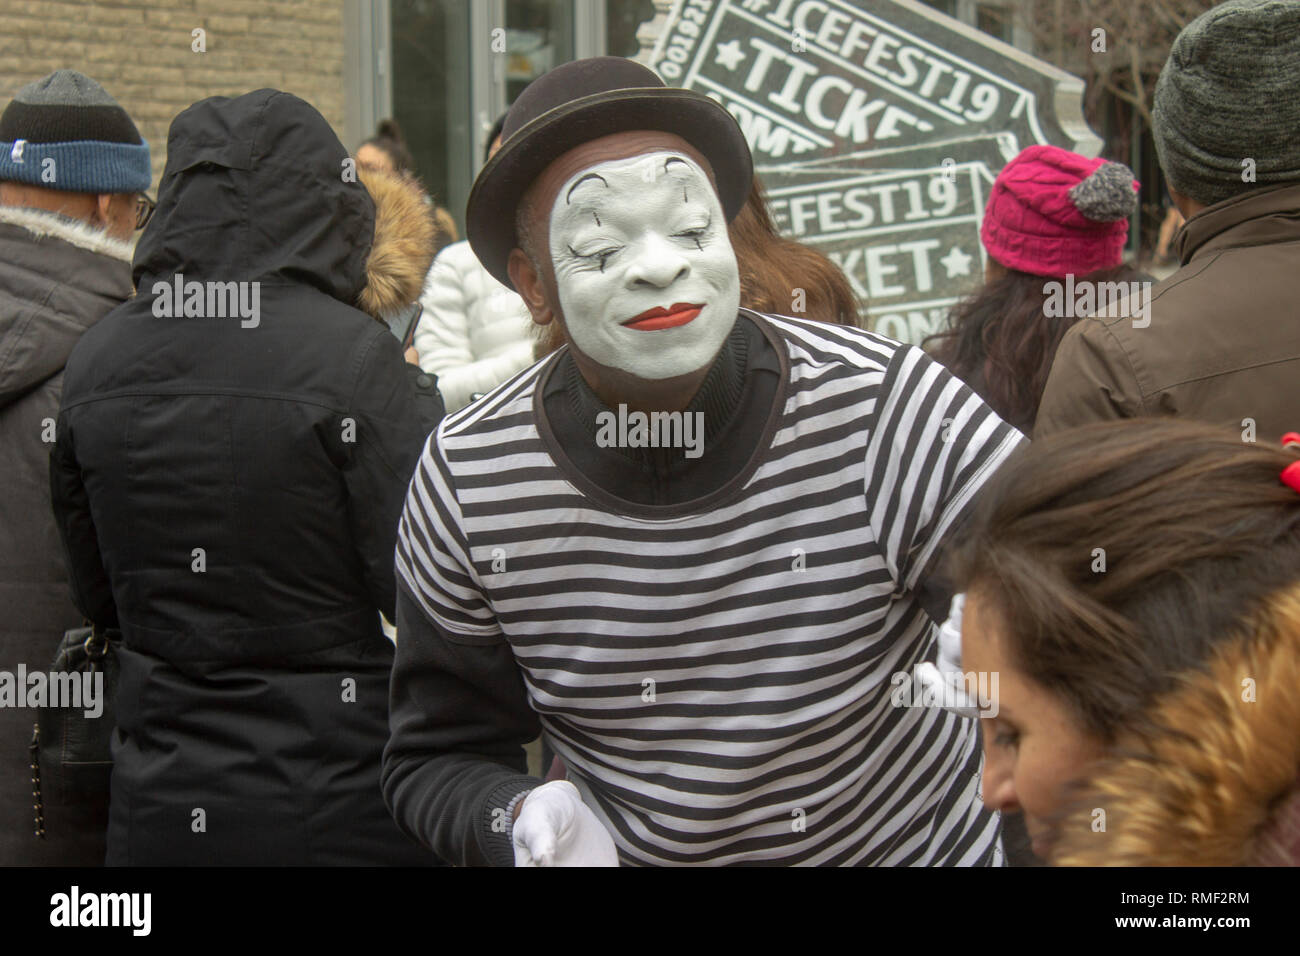 Street Mime performing at a festival - Stock Image